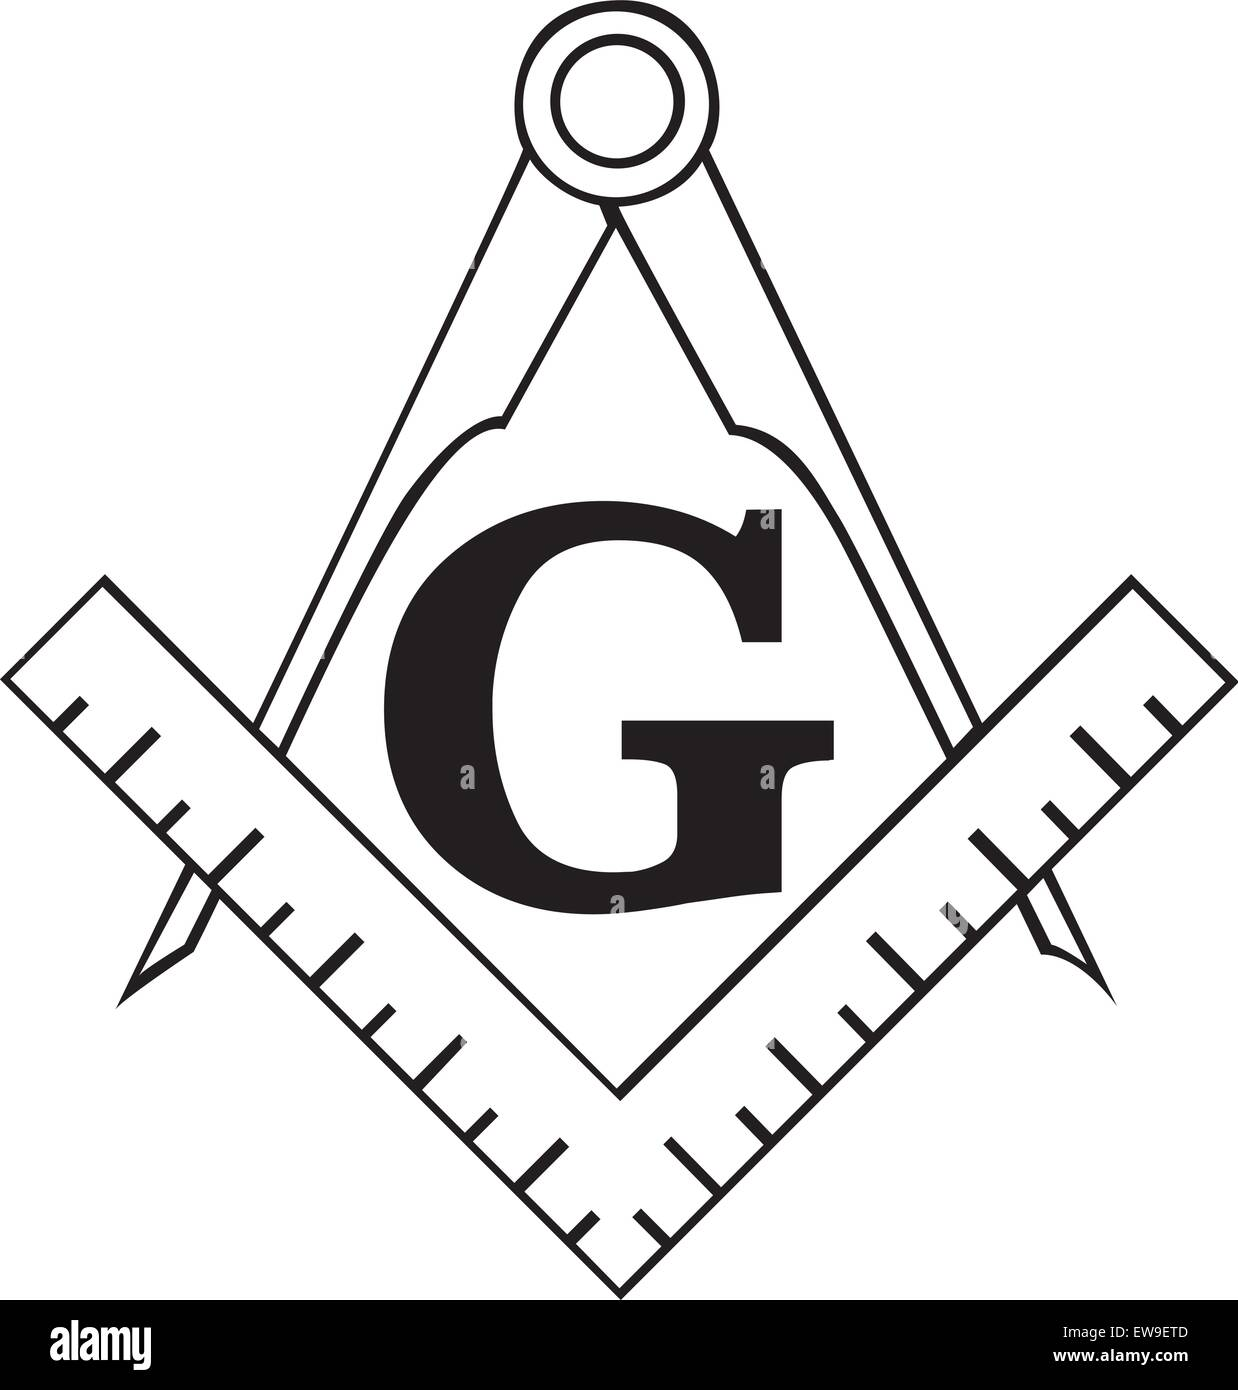 The Masonic Square And Compass Symbol Great For Tattoo Or Artwork